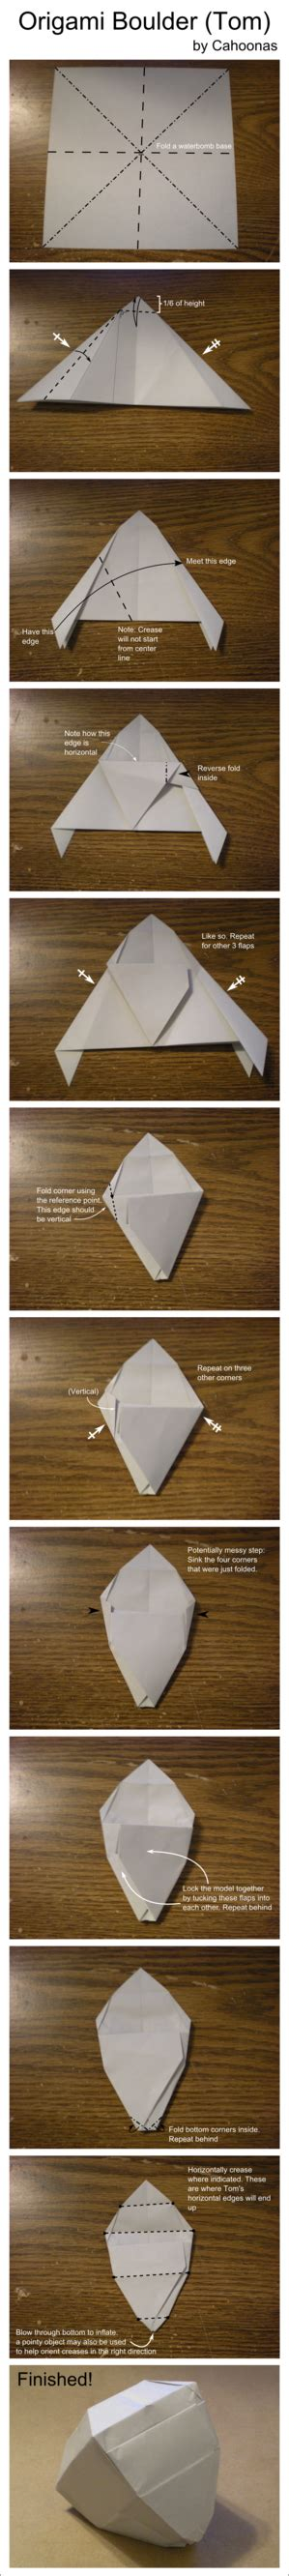 Origami Rock - origami rock tom diagram by cahoonas on deviantart